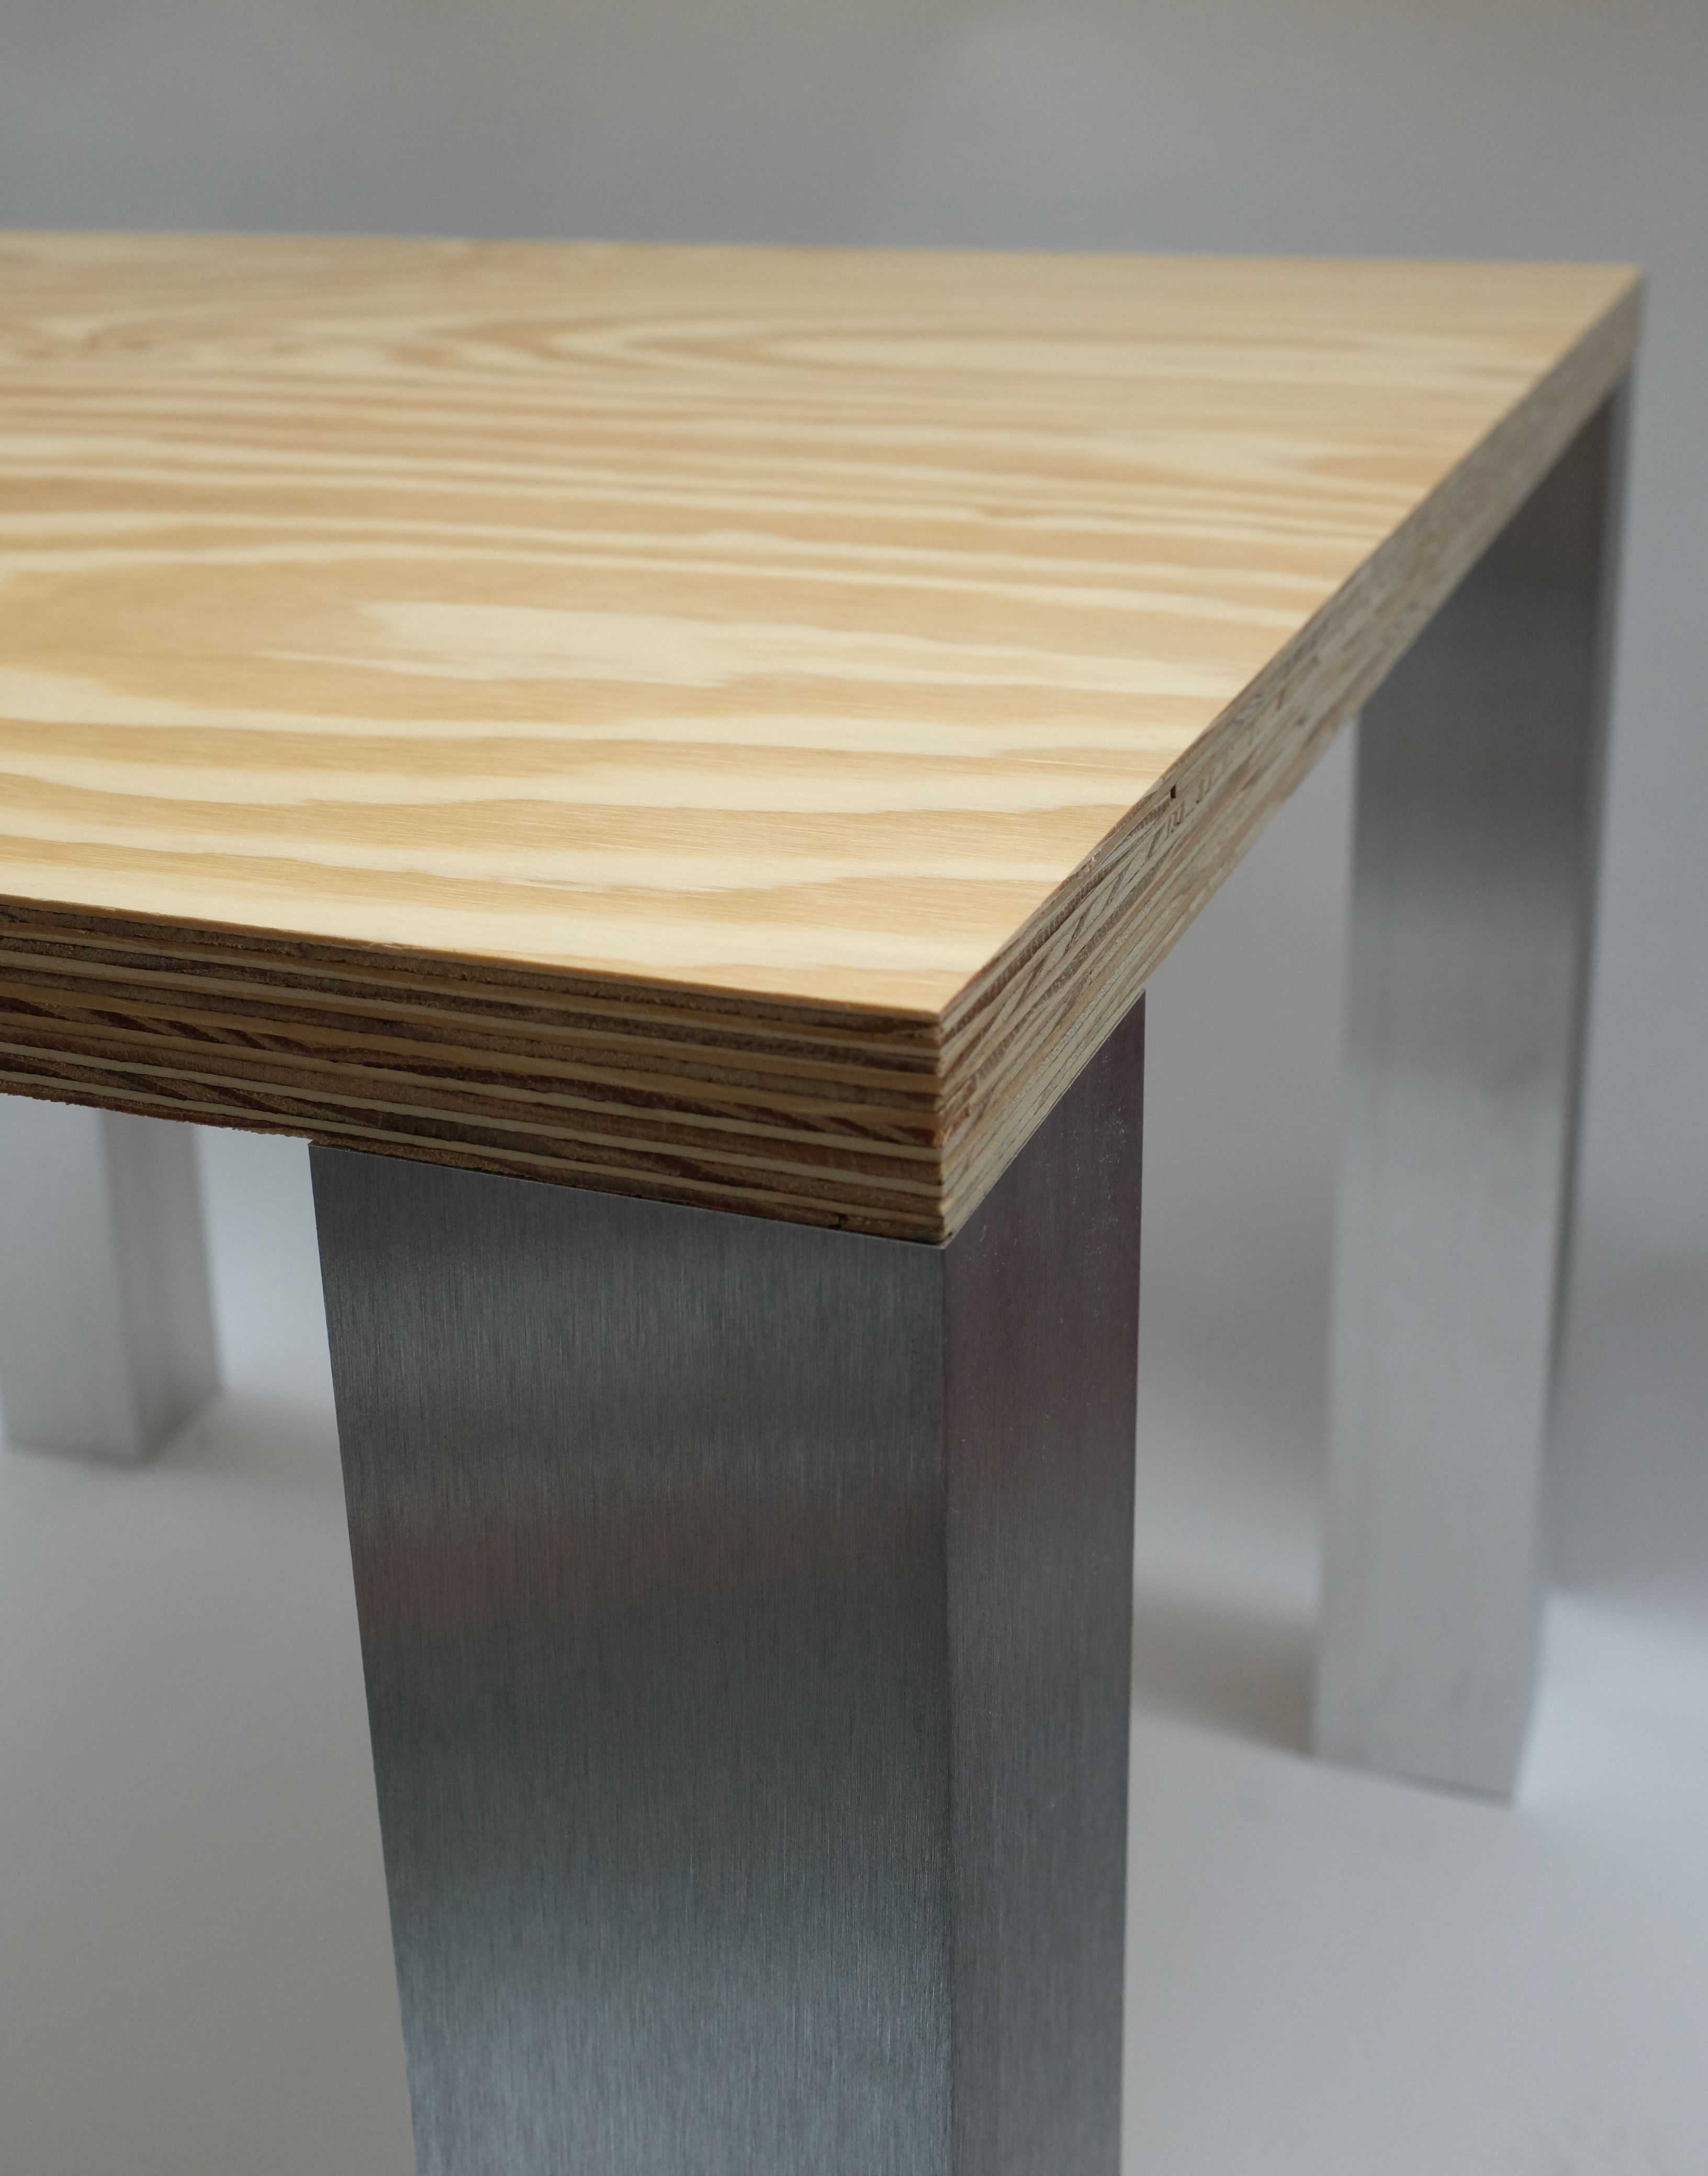 Small Dining Table 900mm Square 750mm High Chunky 36mm Ply Top Slightly